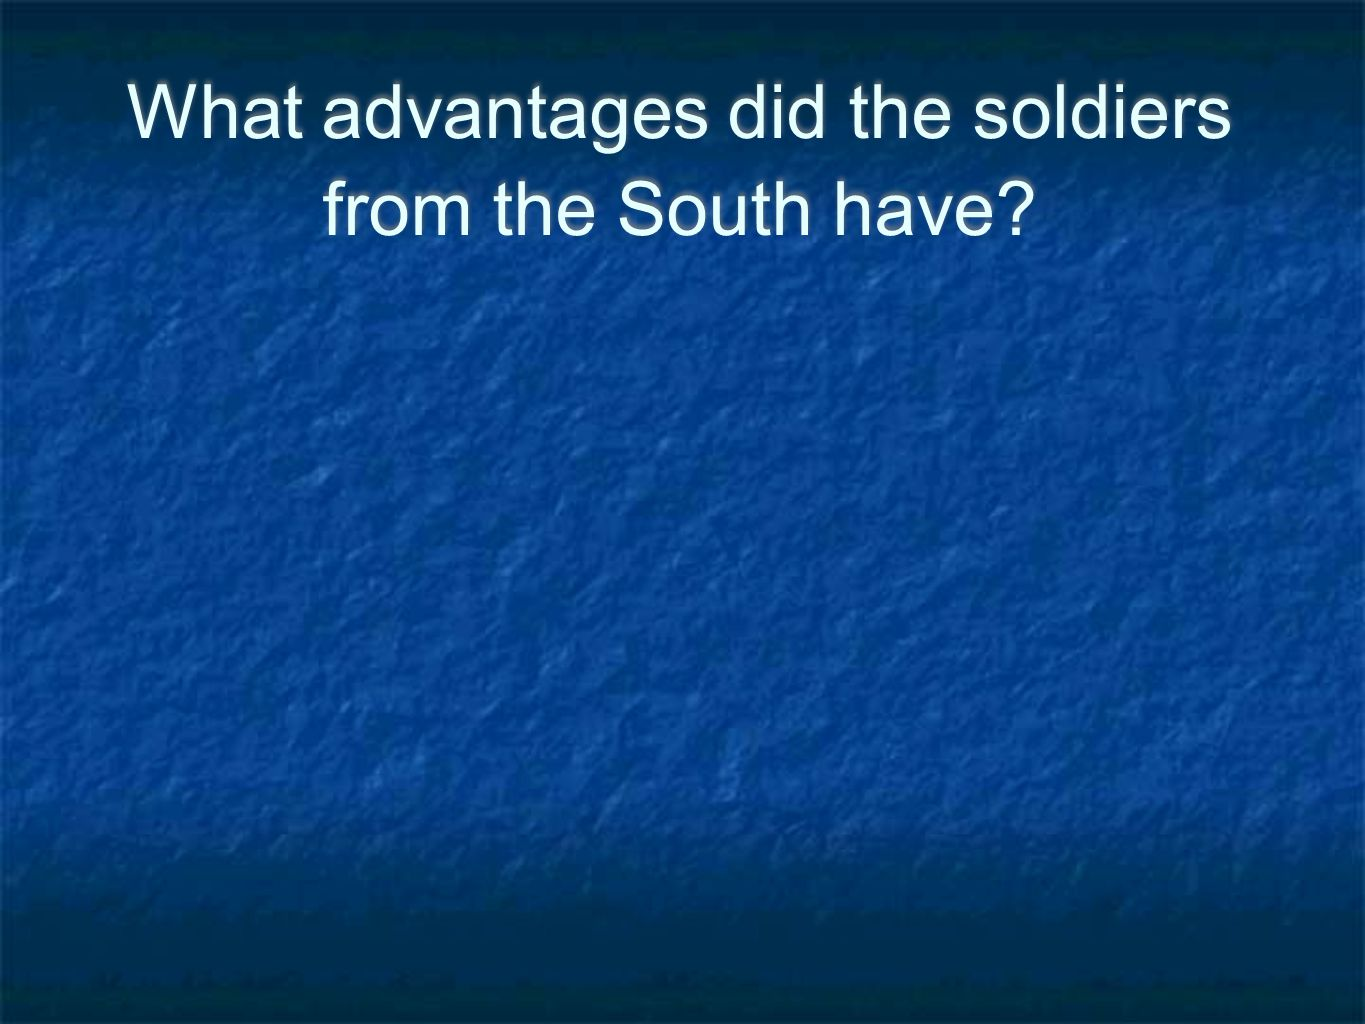 What advantages did the soldiers from the South have